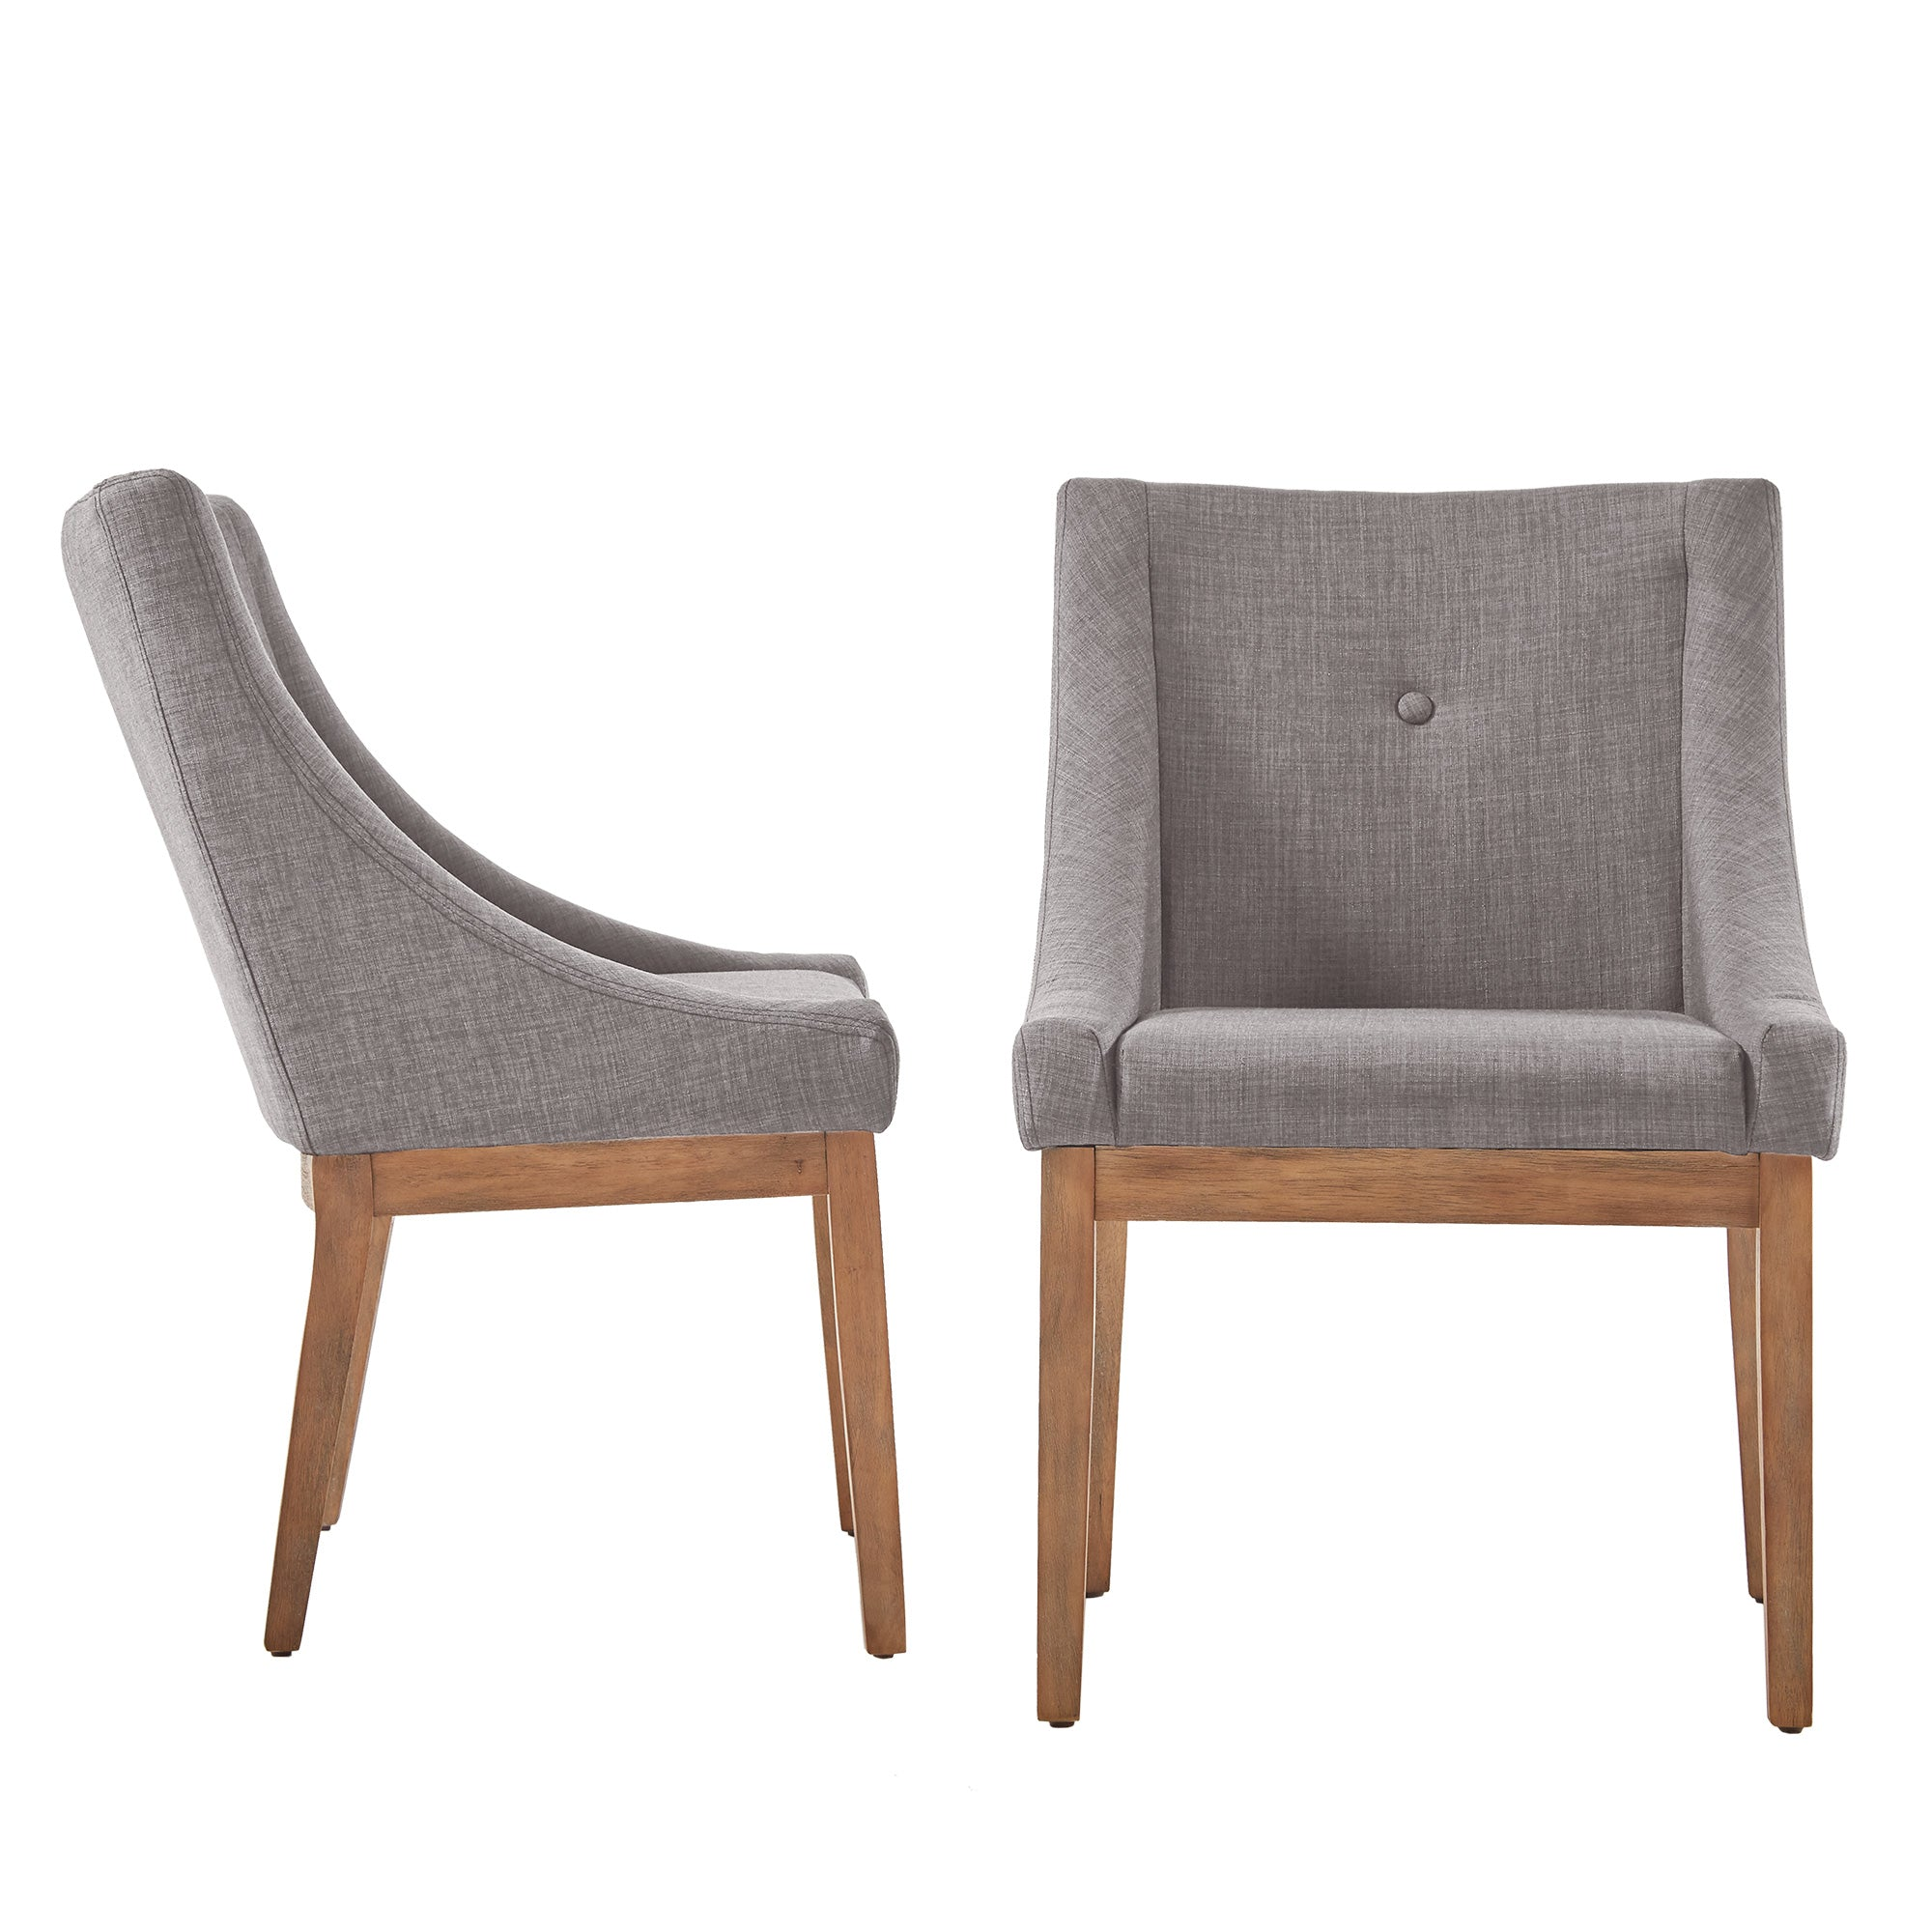 Button Tufted Slope Arm Linen Dining Chair (Set of 2) - Grey